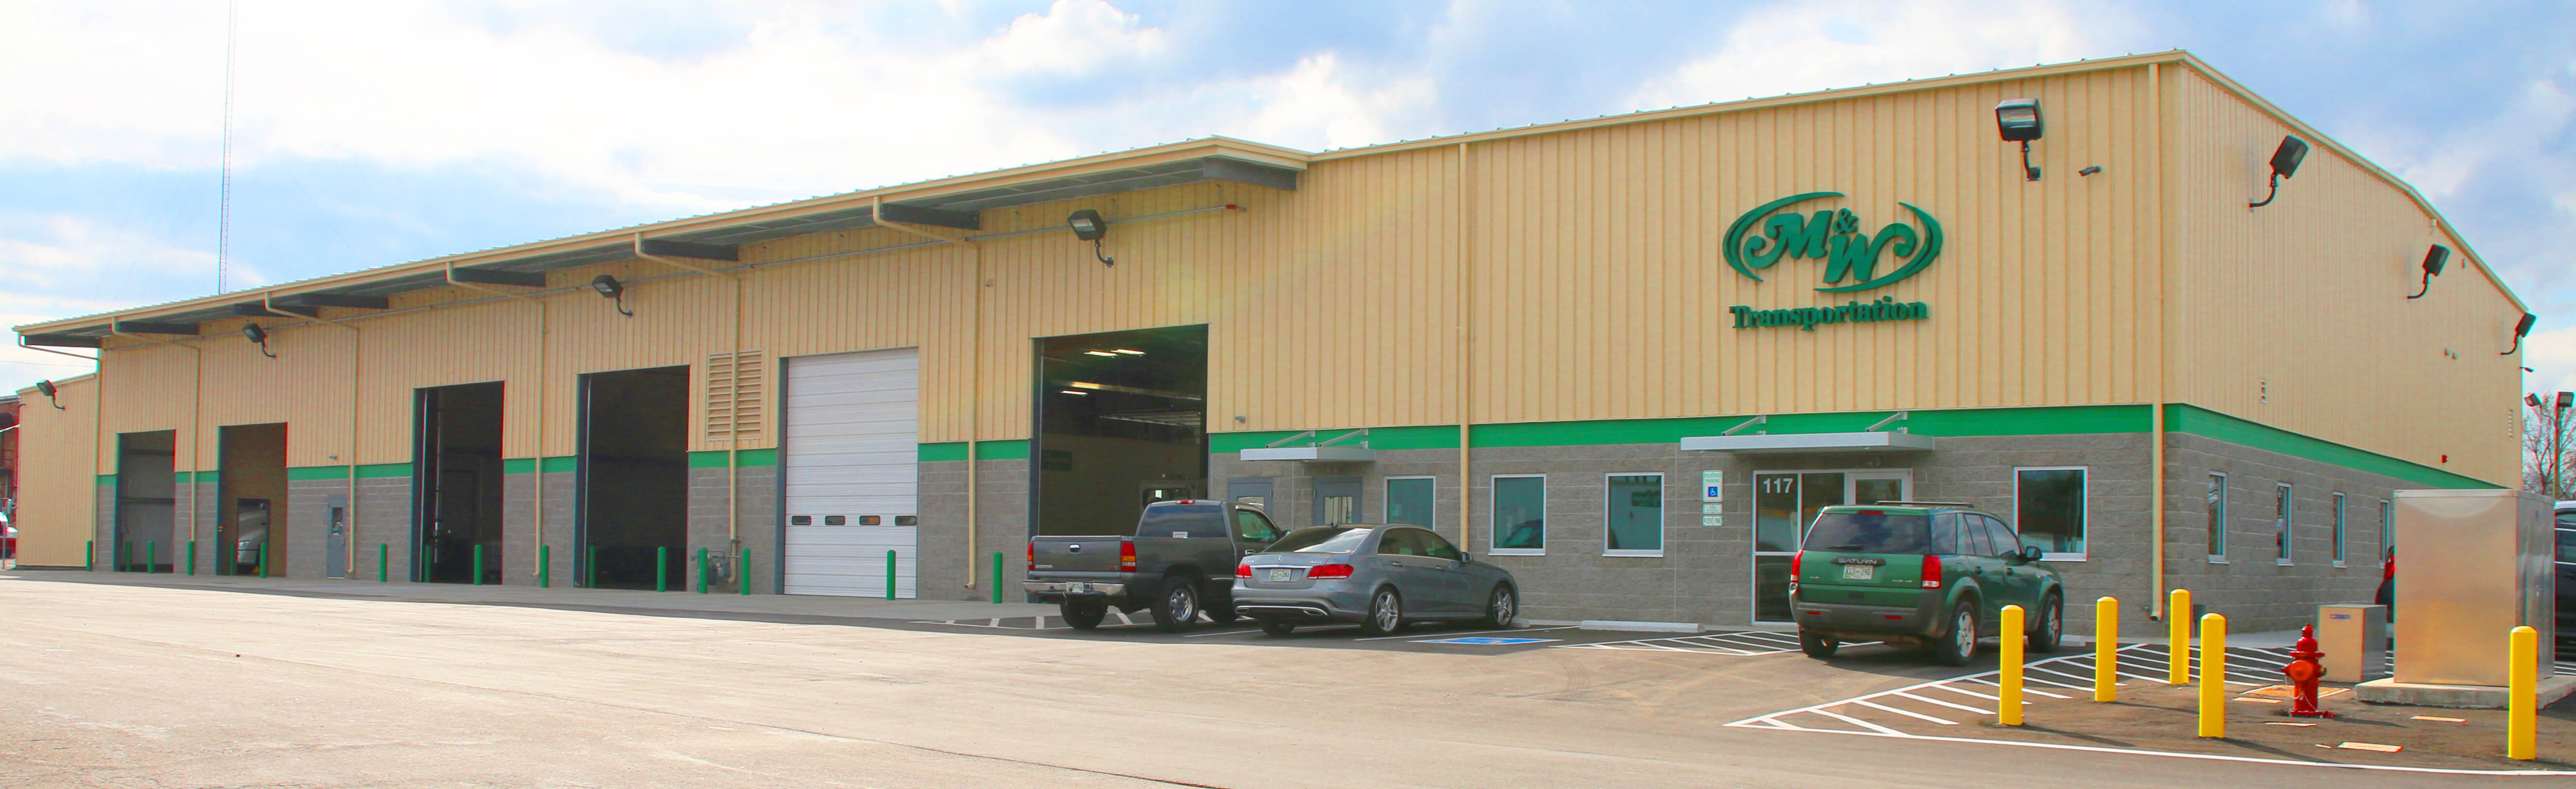 M&W Transportation Announces the Opening of New Truck Service & Repair Center